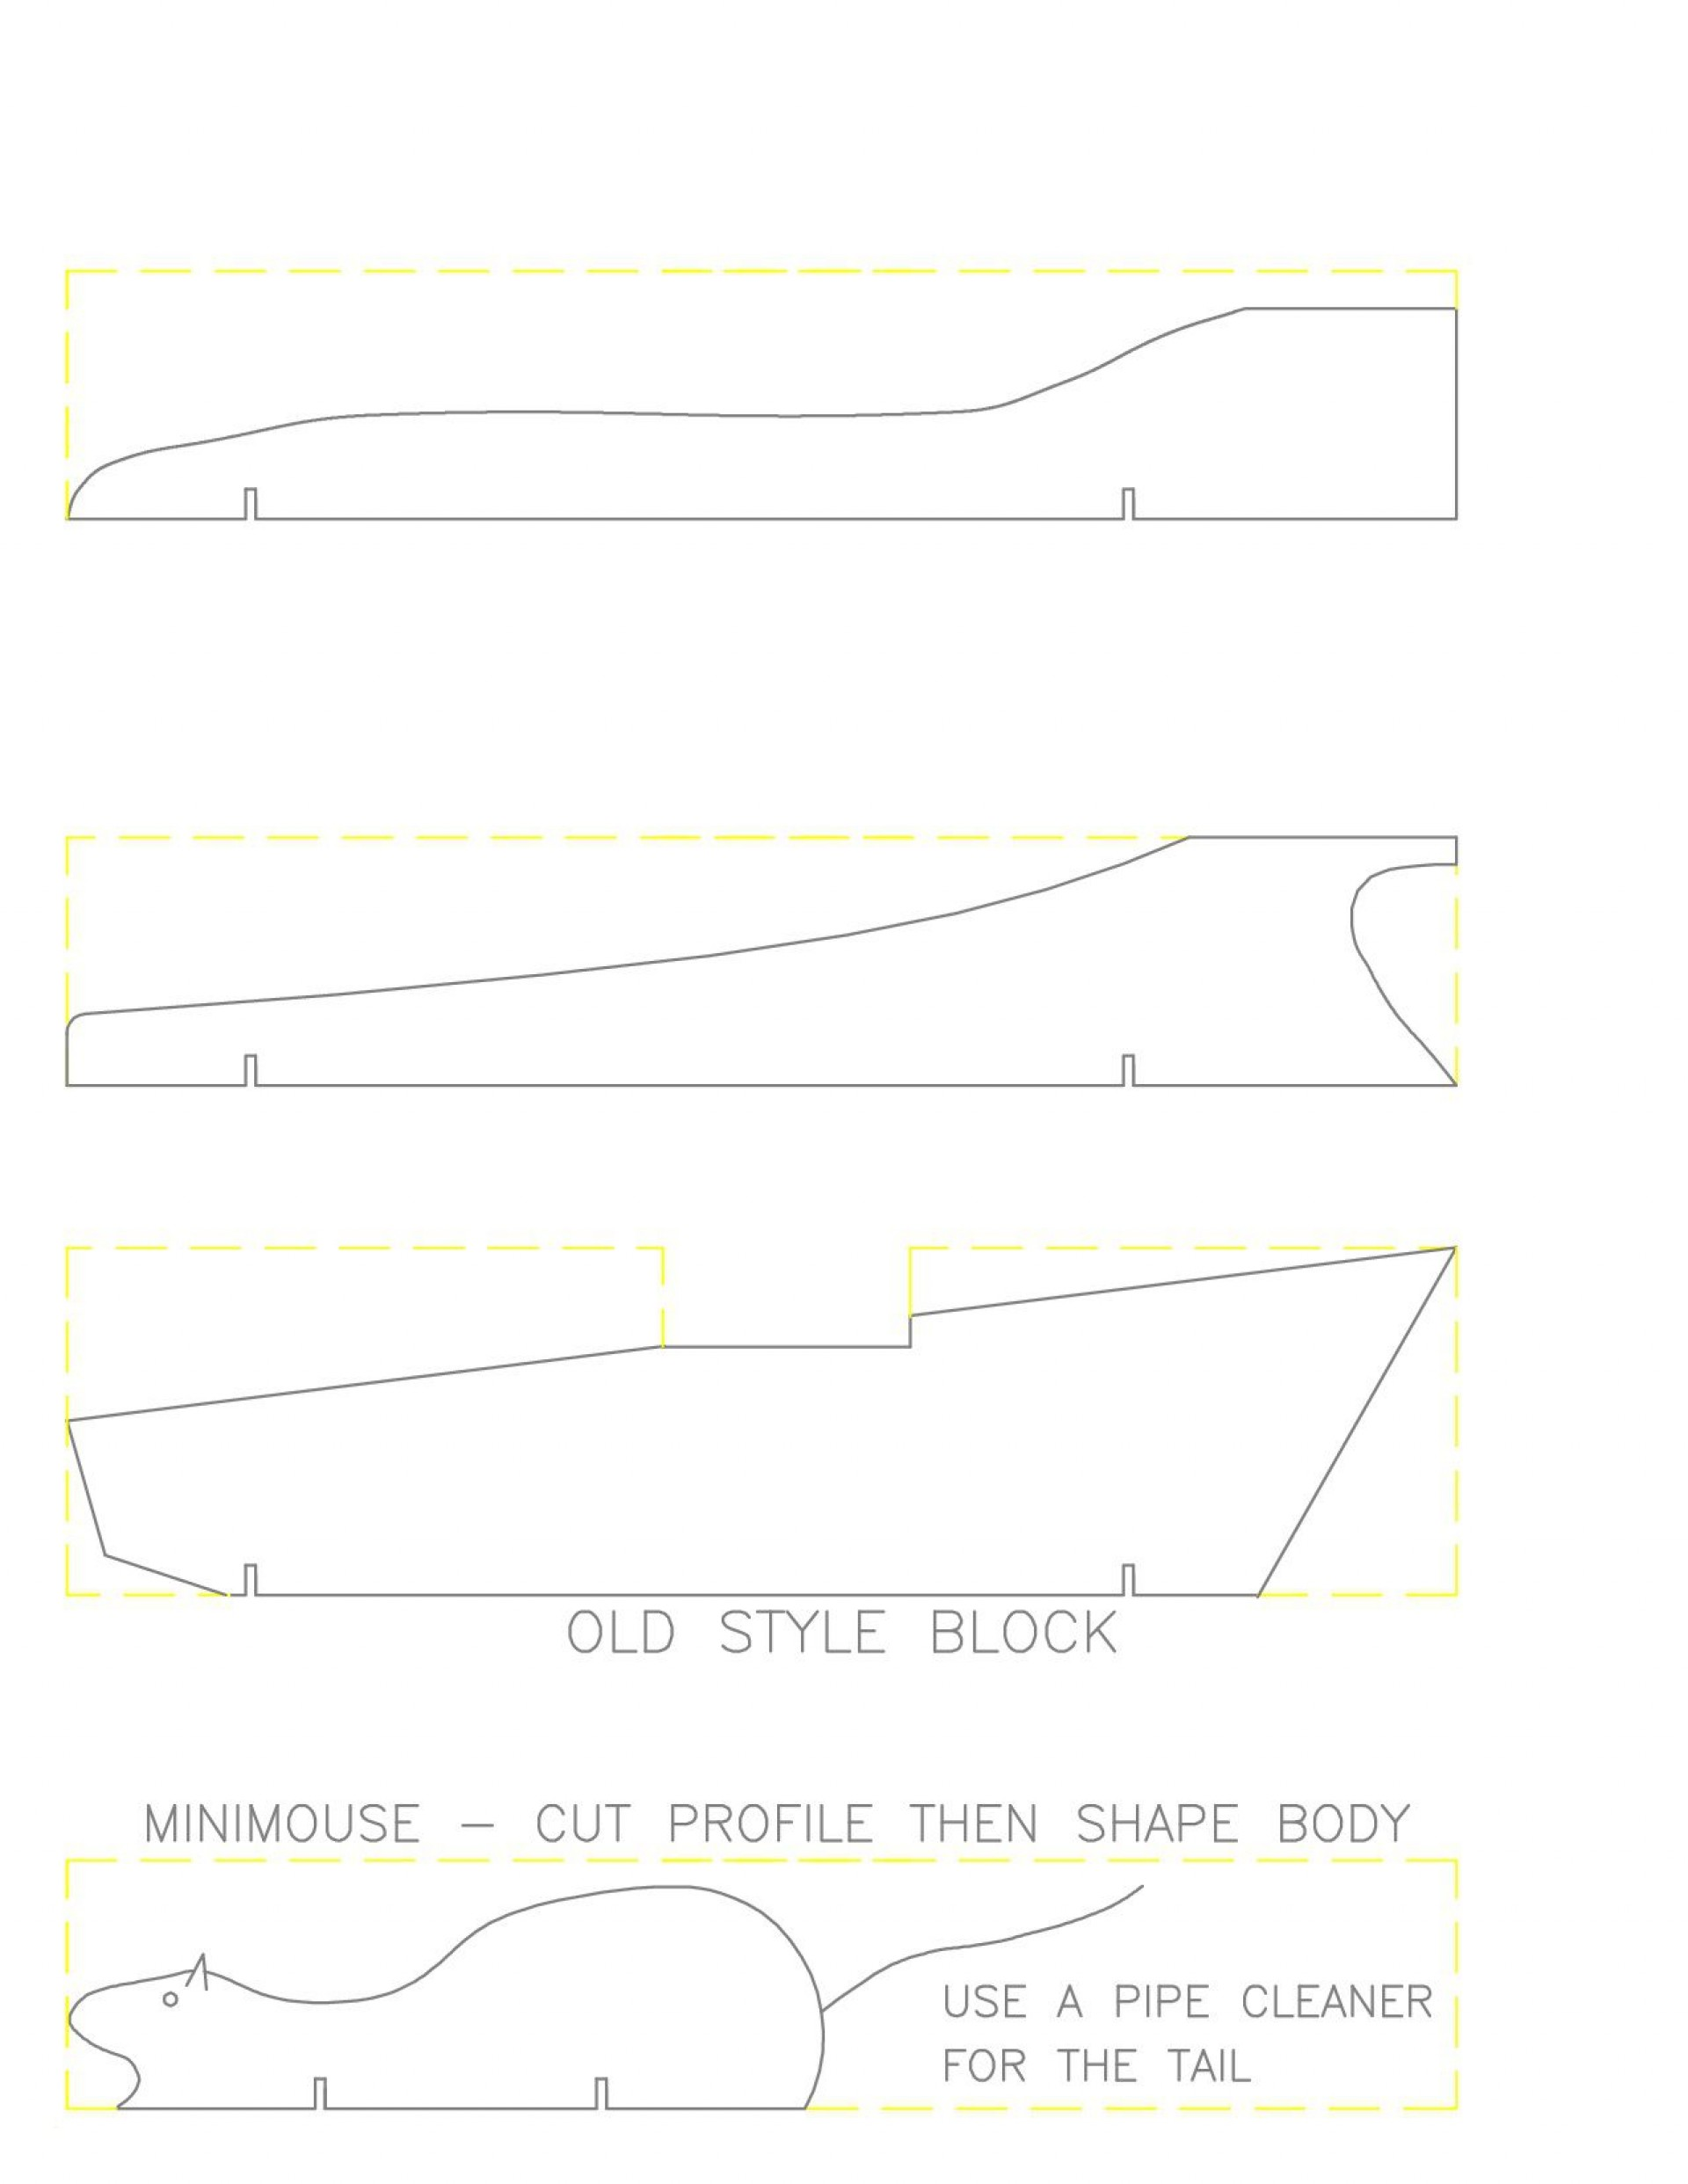 000 Magnificent Pinewood Derby Car Design Template  Fast Wedge1920